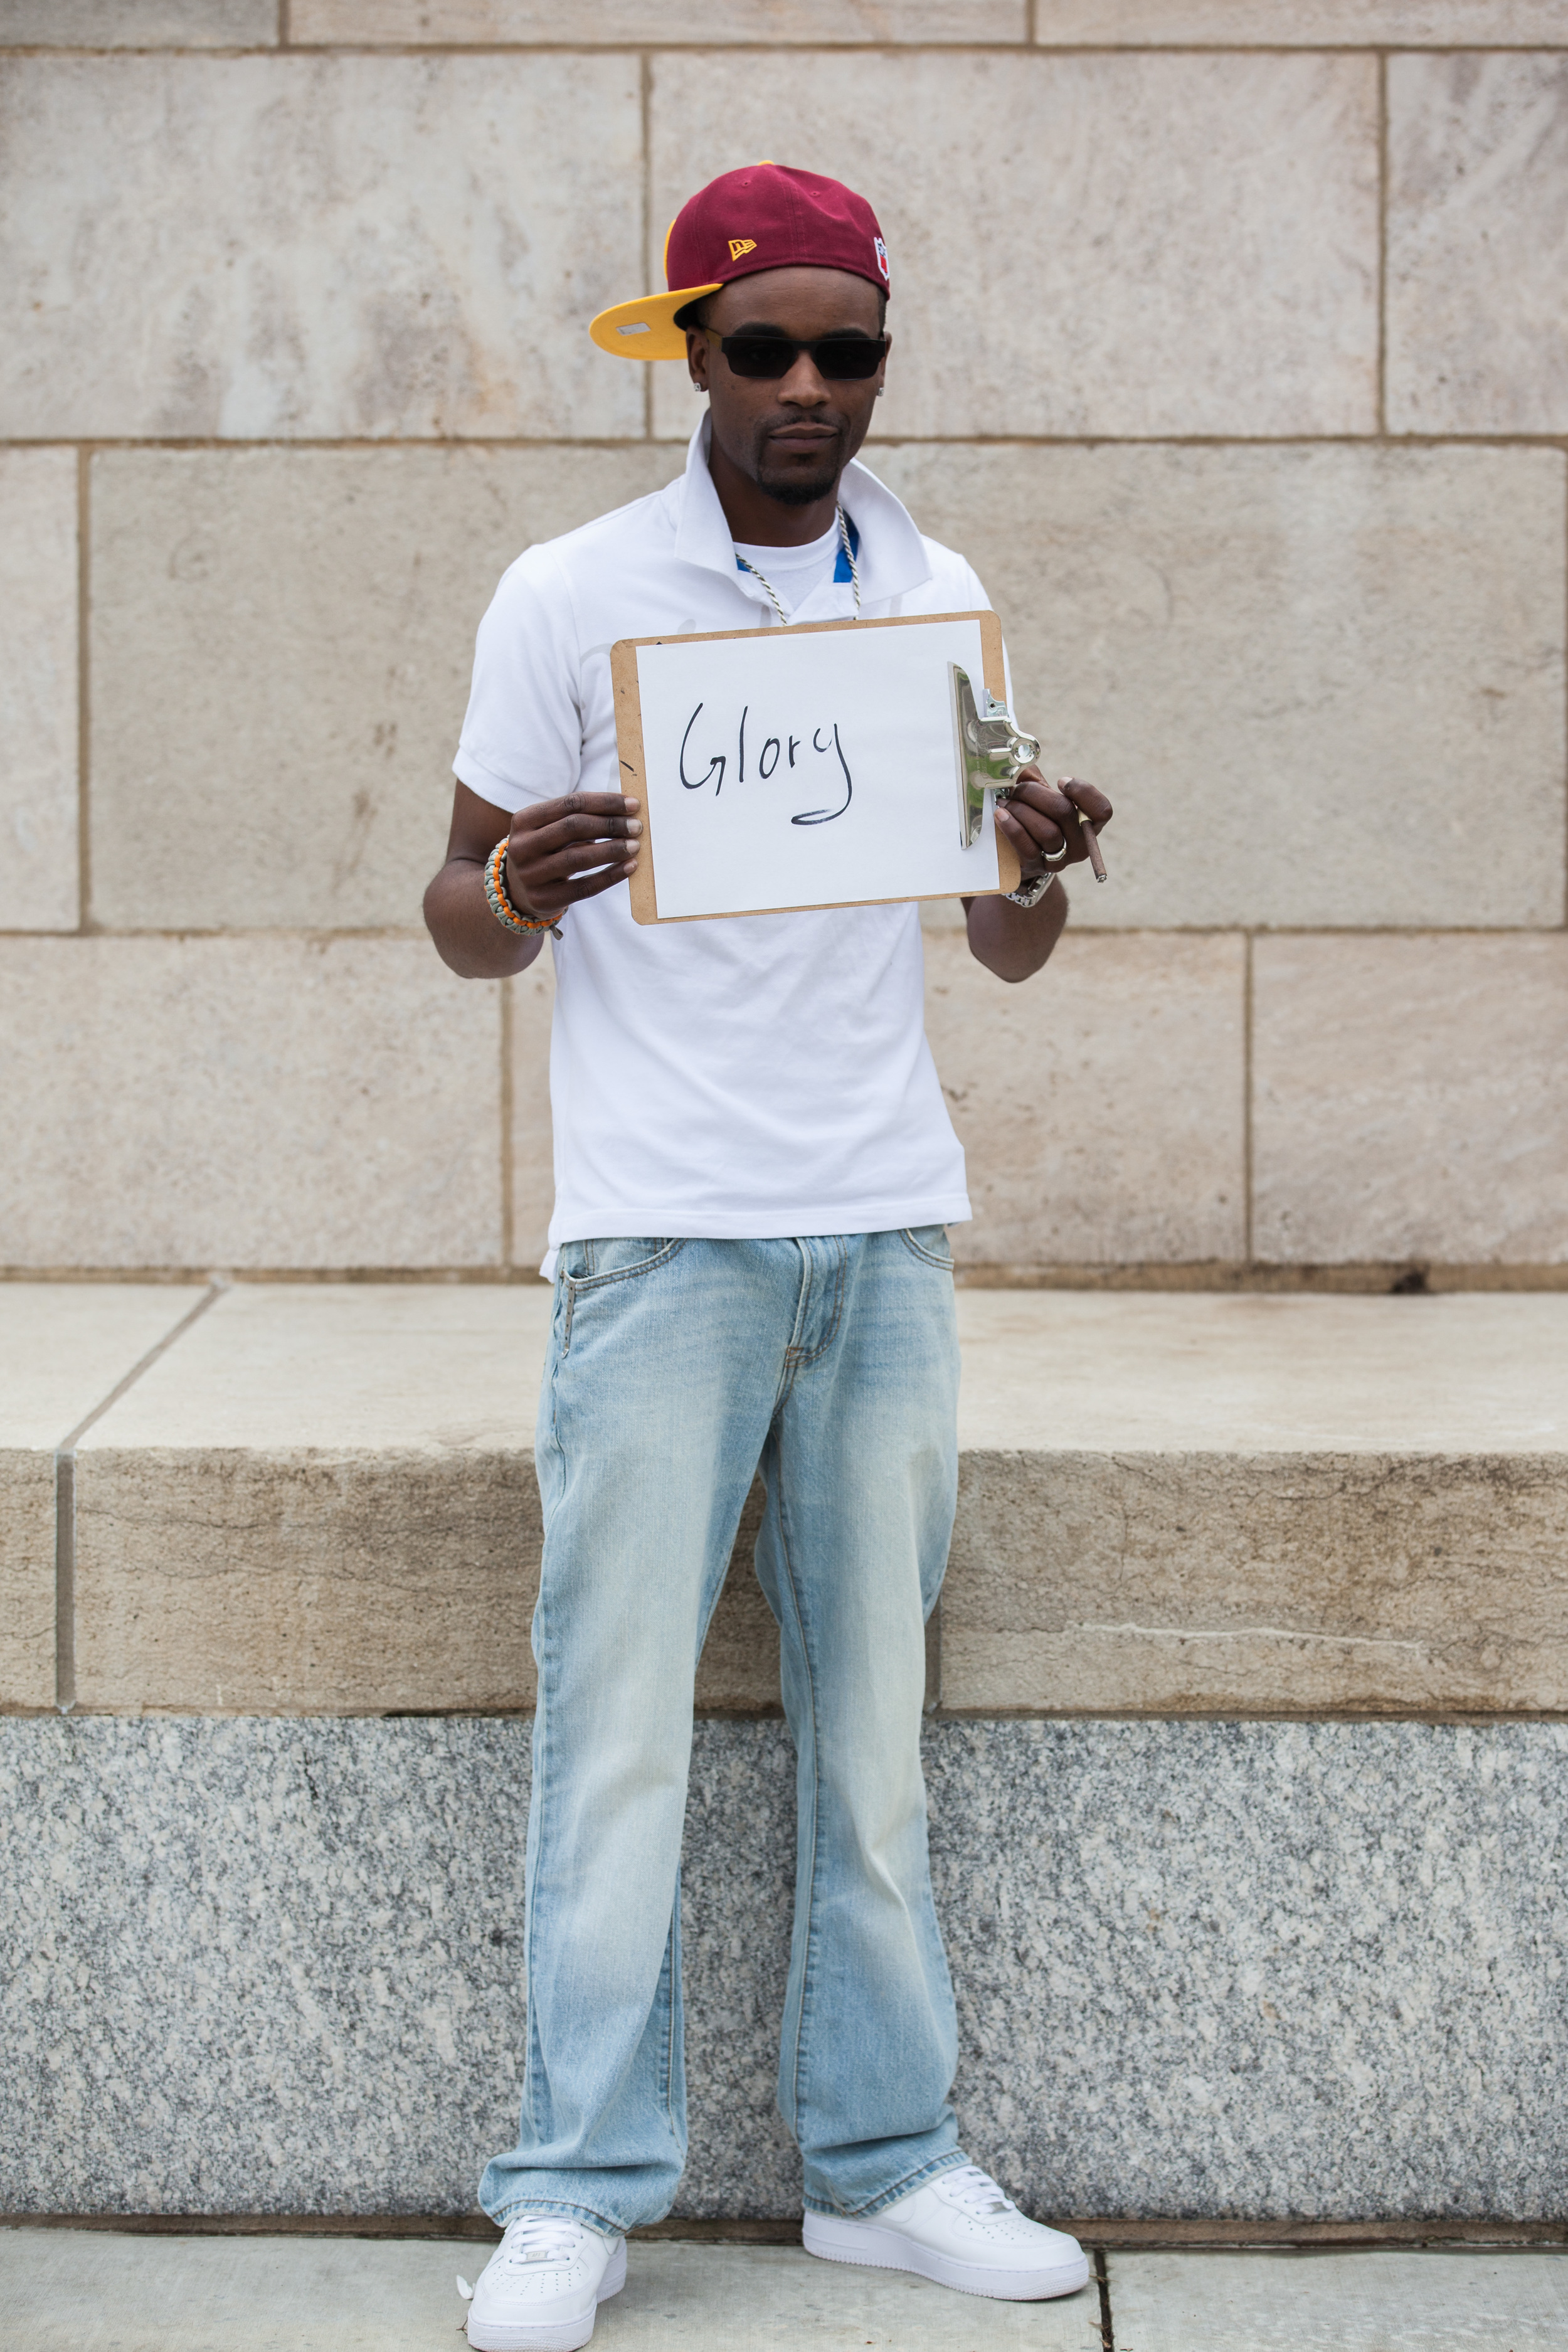 Man holding a sign that says glory.